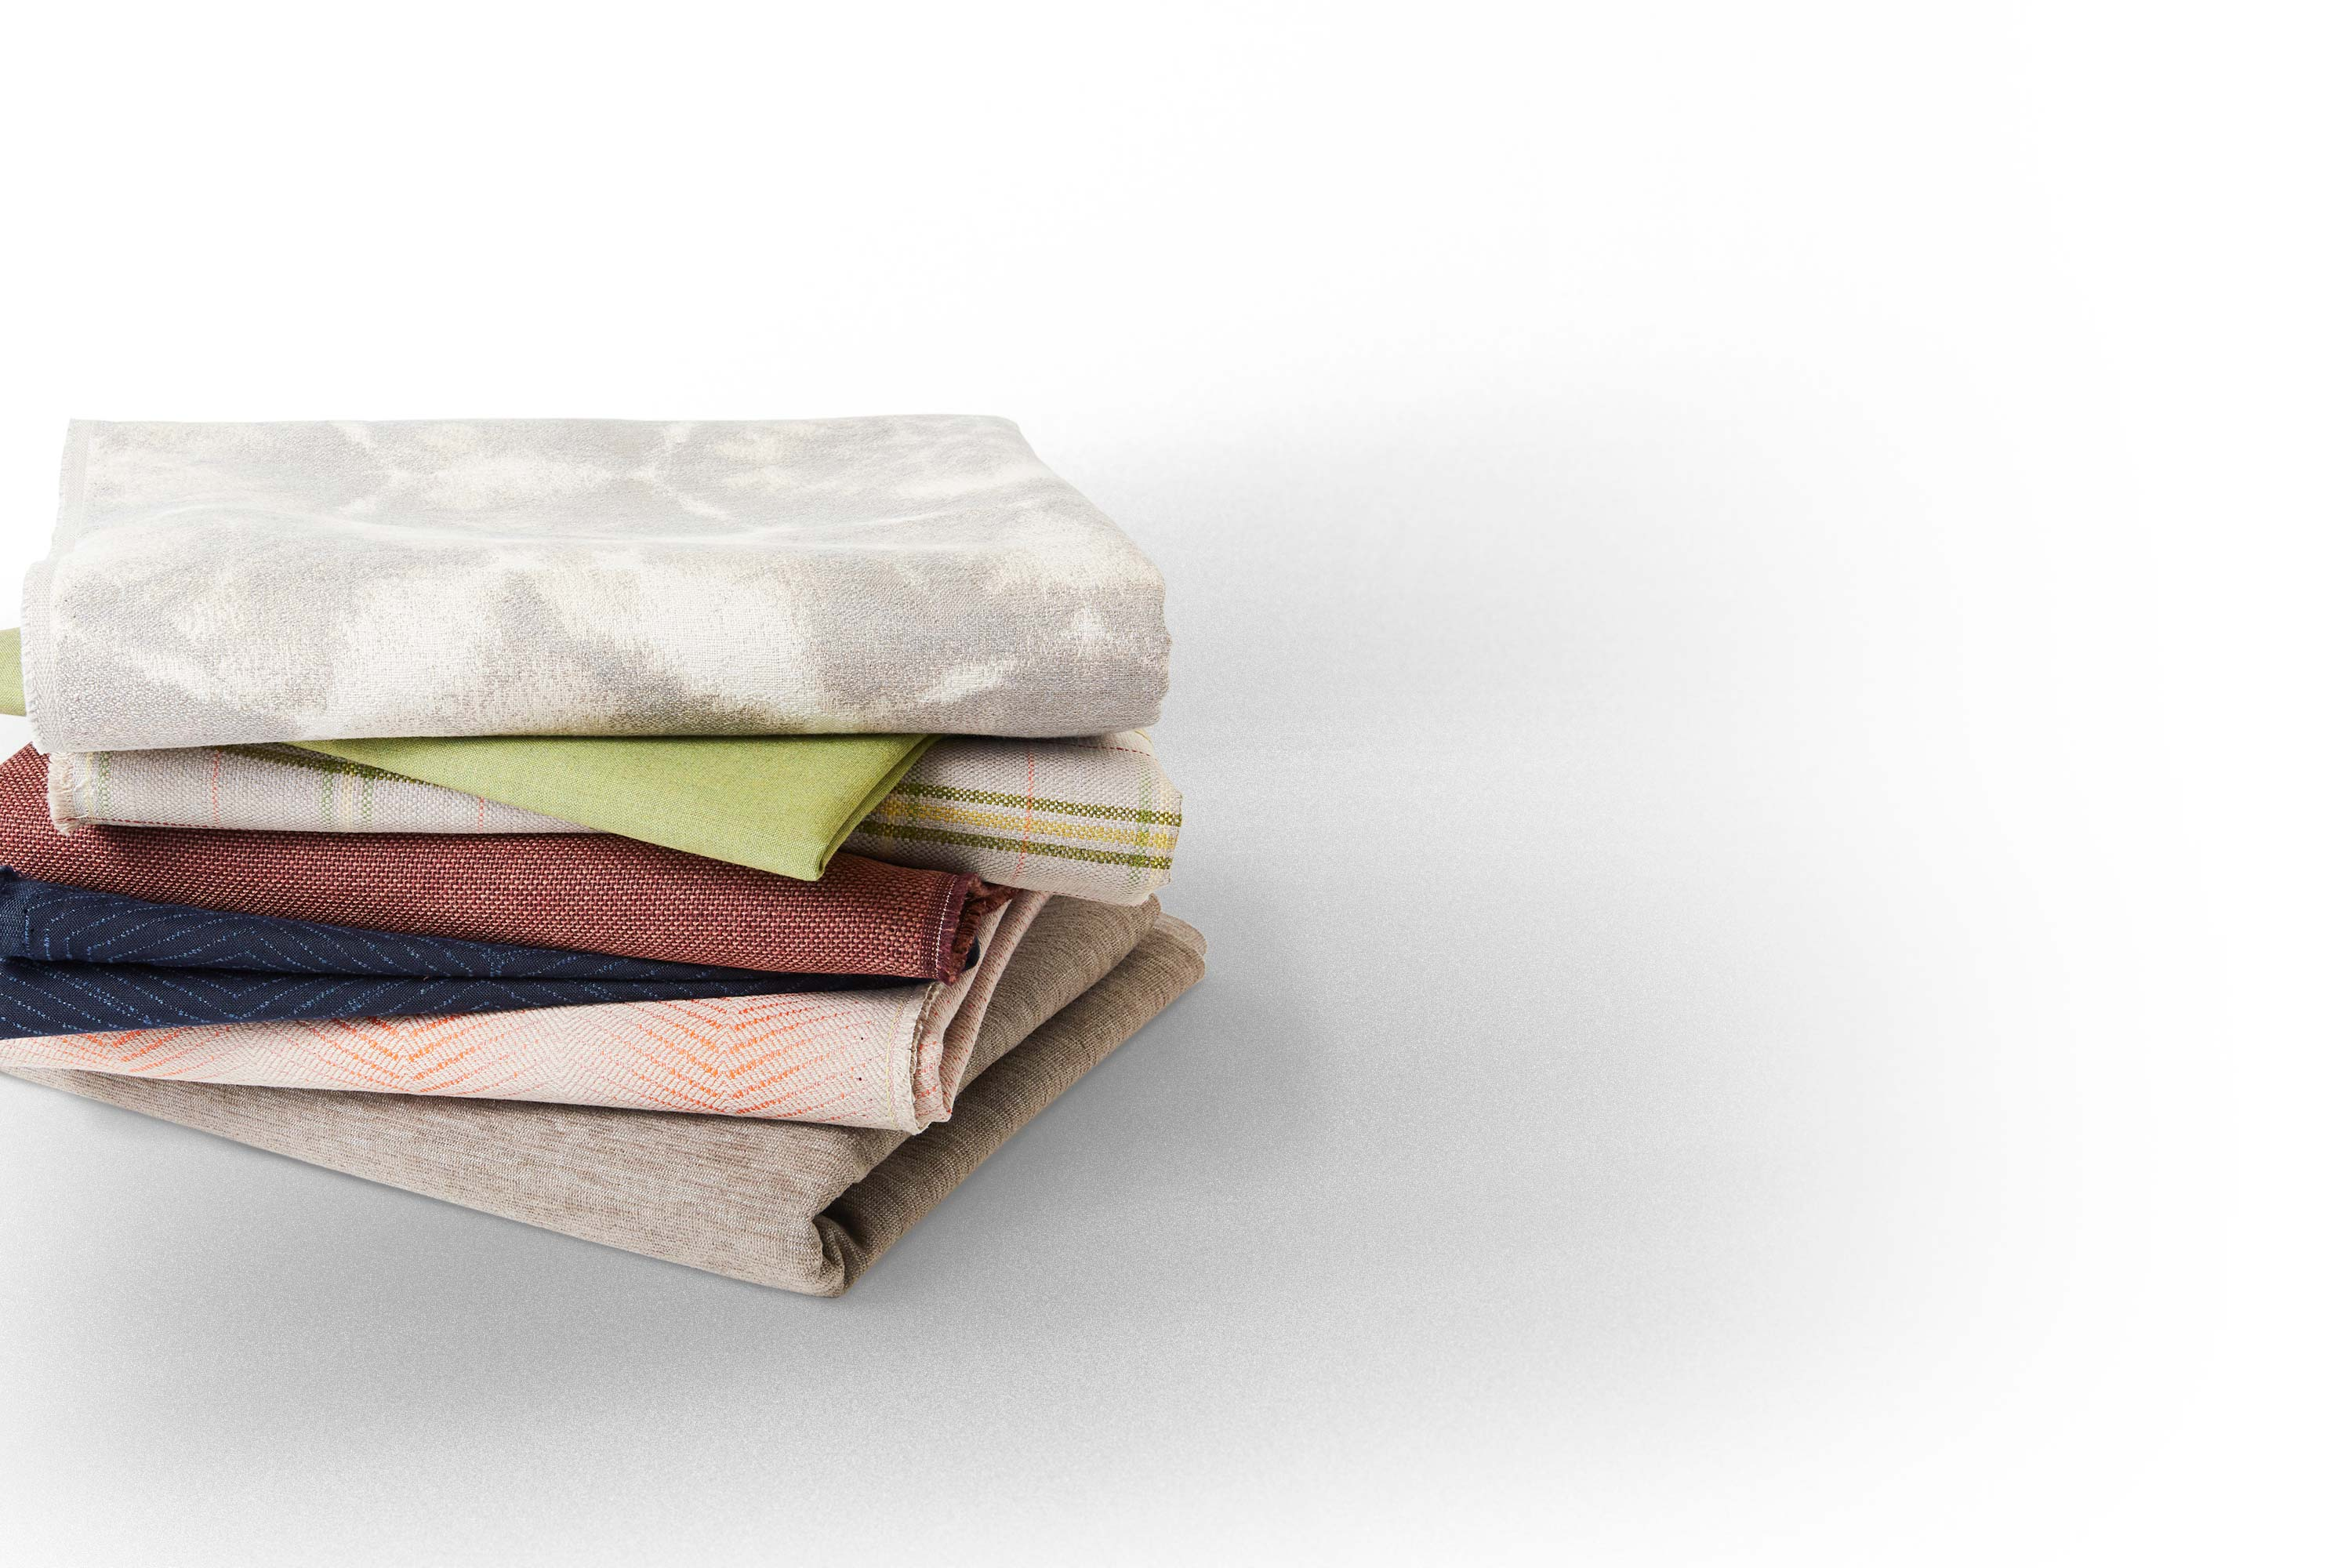 Closeup shot of a folded stack of fabric from the Sunbrella Pure Collection.